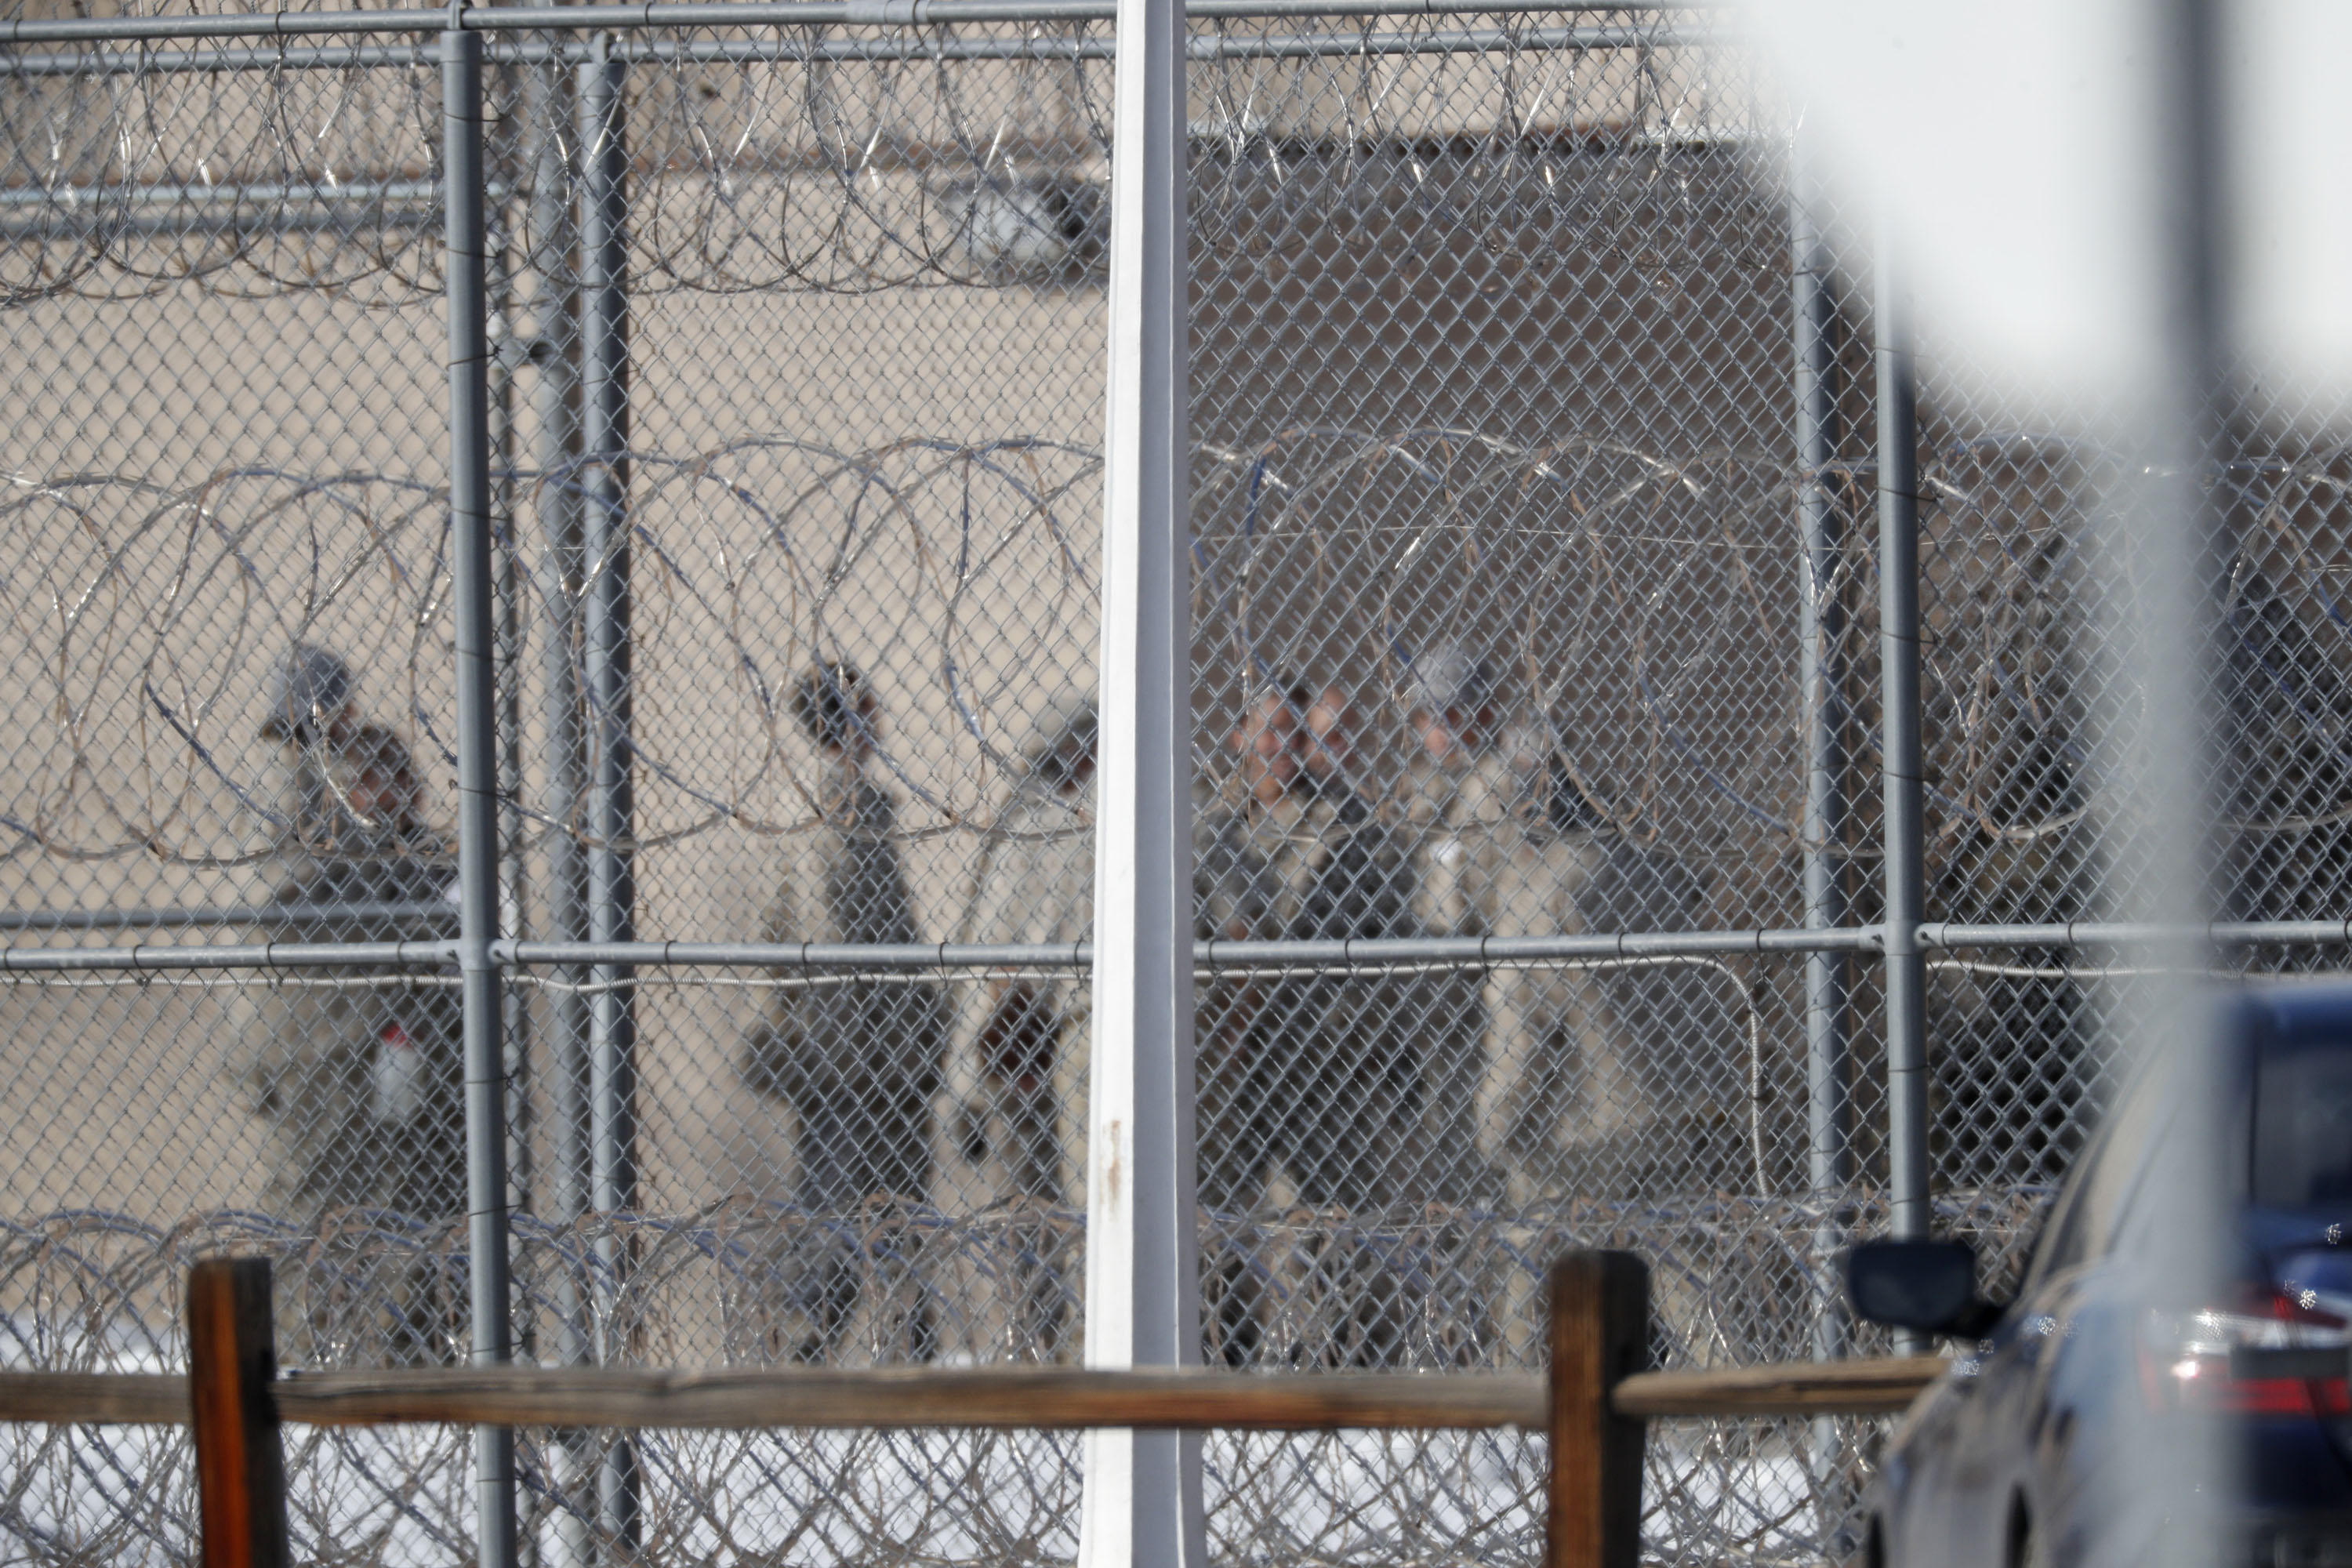 Prisoners stand outside a federal correctional institution in Englewood, Colorado, on February 18.